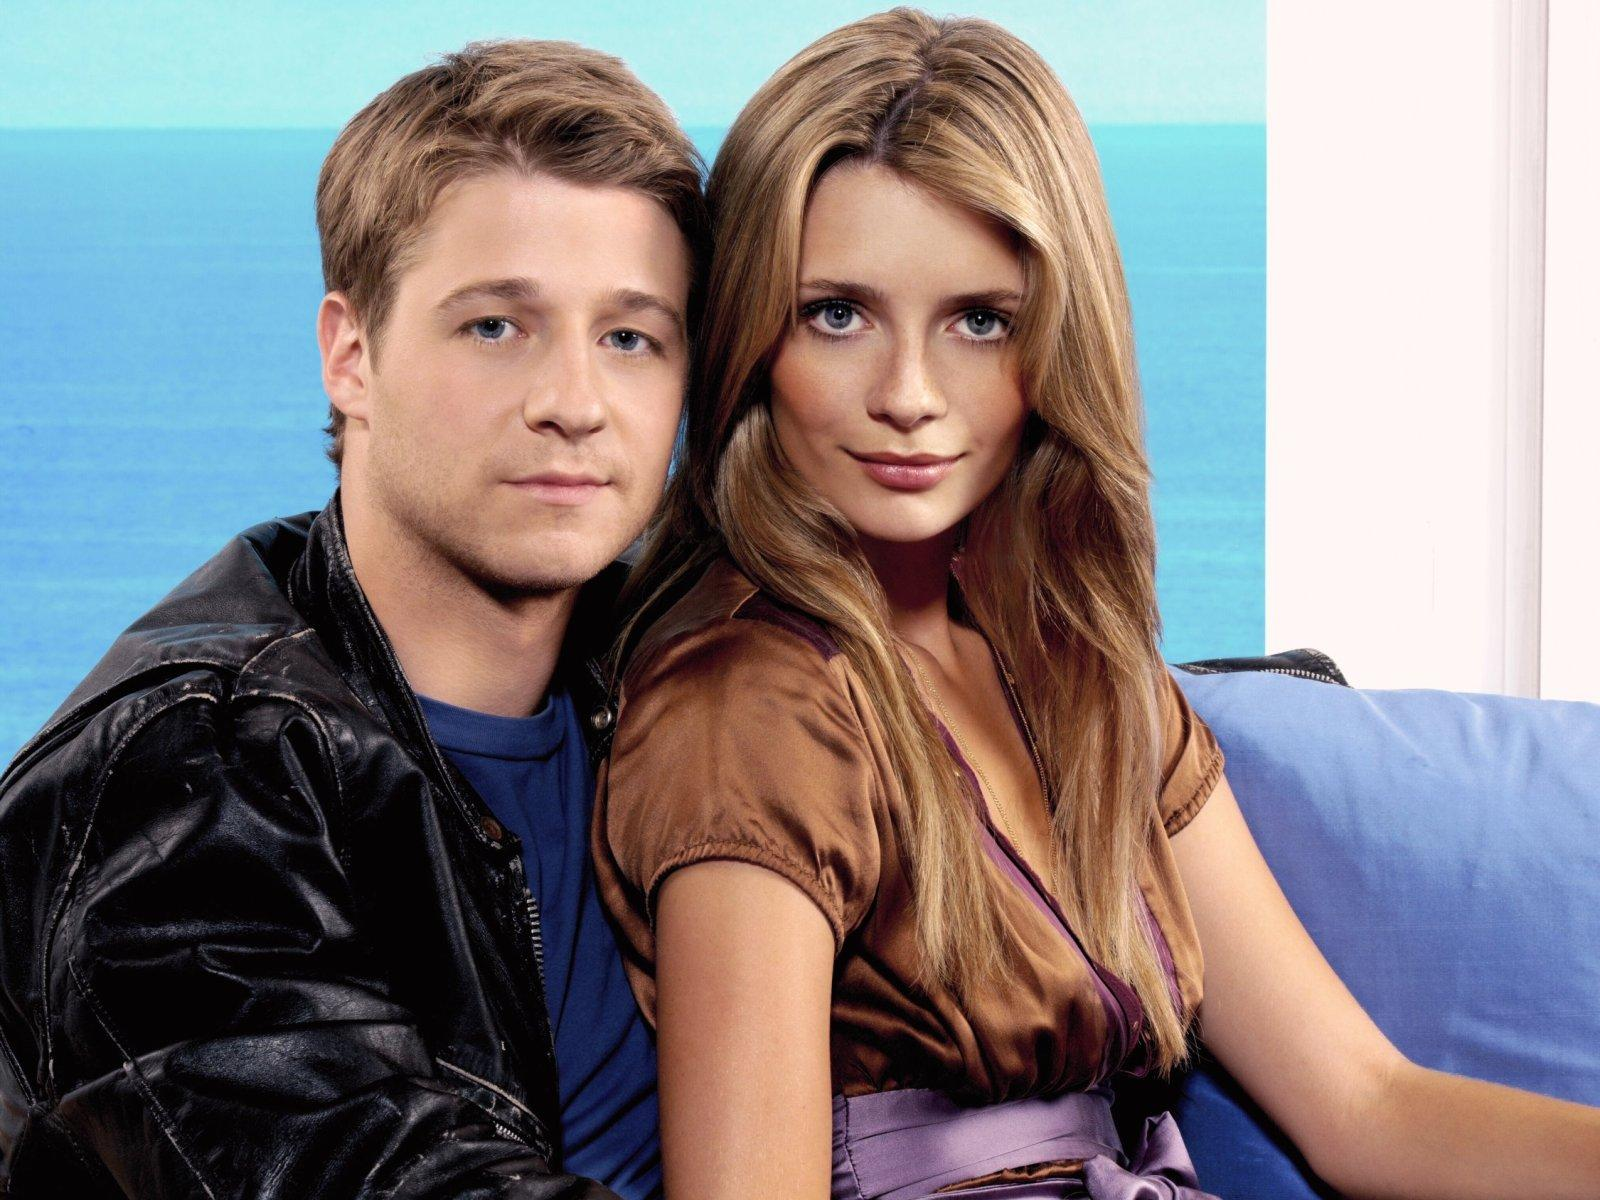 The O.C. wallpapers and image